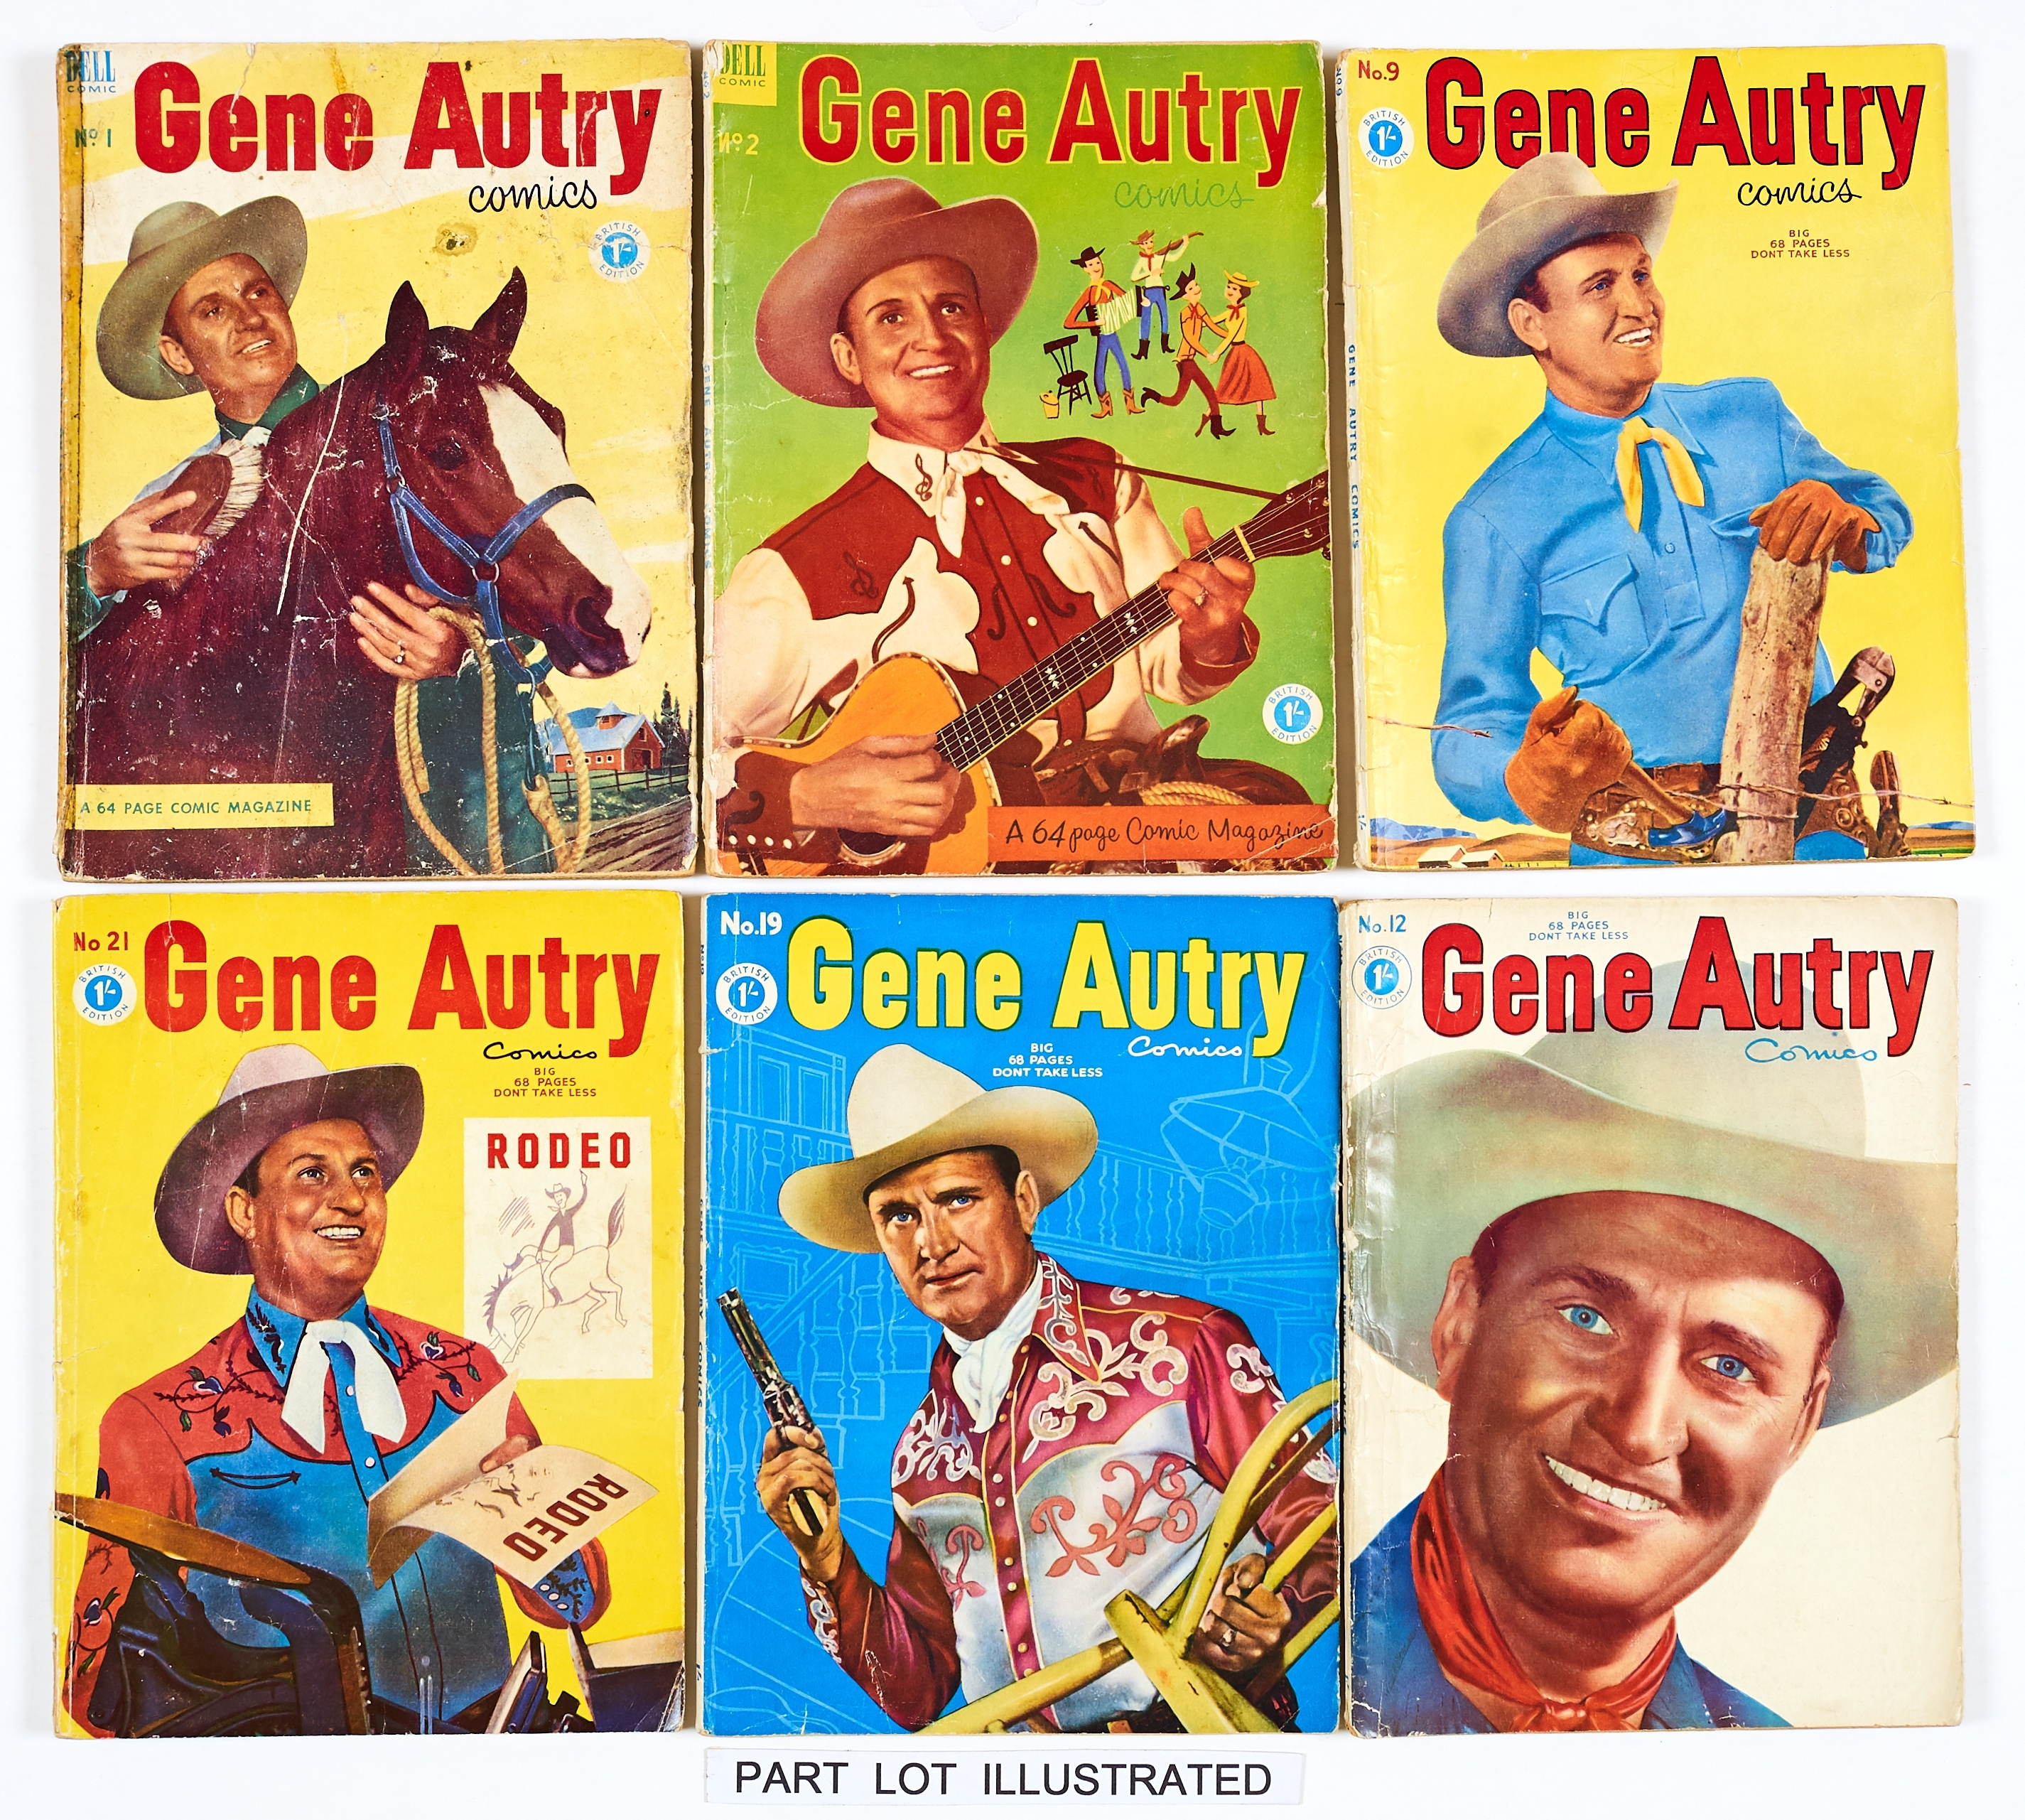 Lot 52 - Gene Autry (Dell UK reprints 1953-57) 1, 2, 4-9, 11-30. No 1: well worn covers, taped spine [fr], 4,